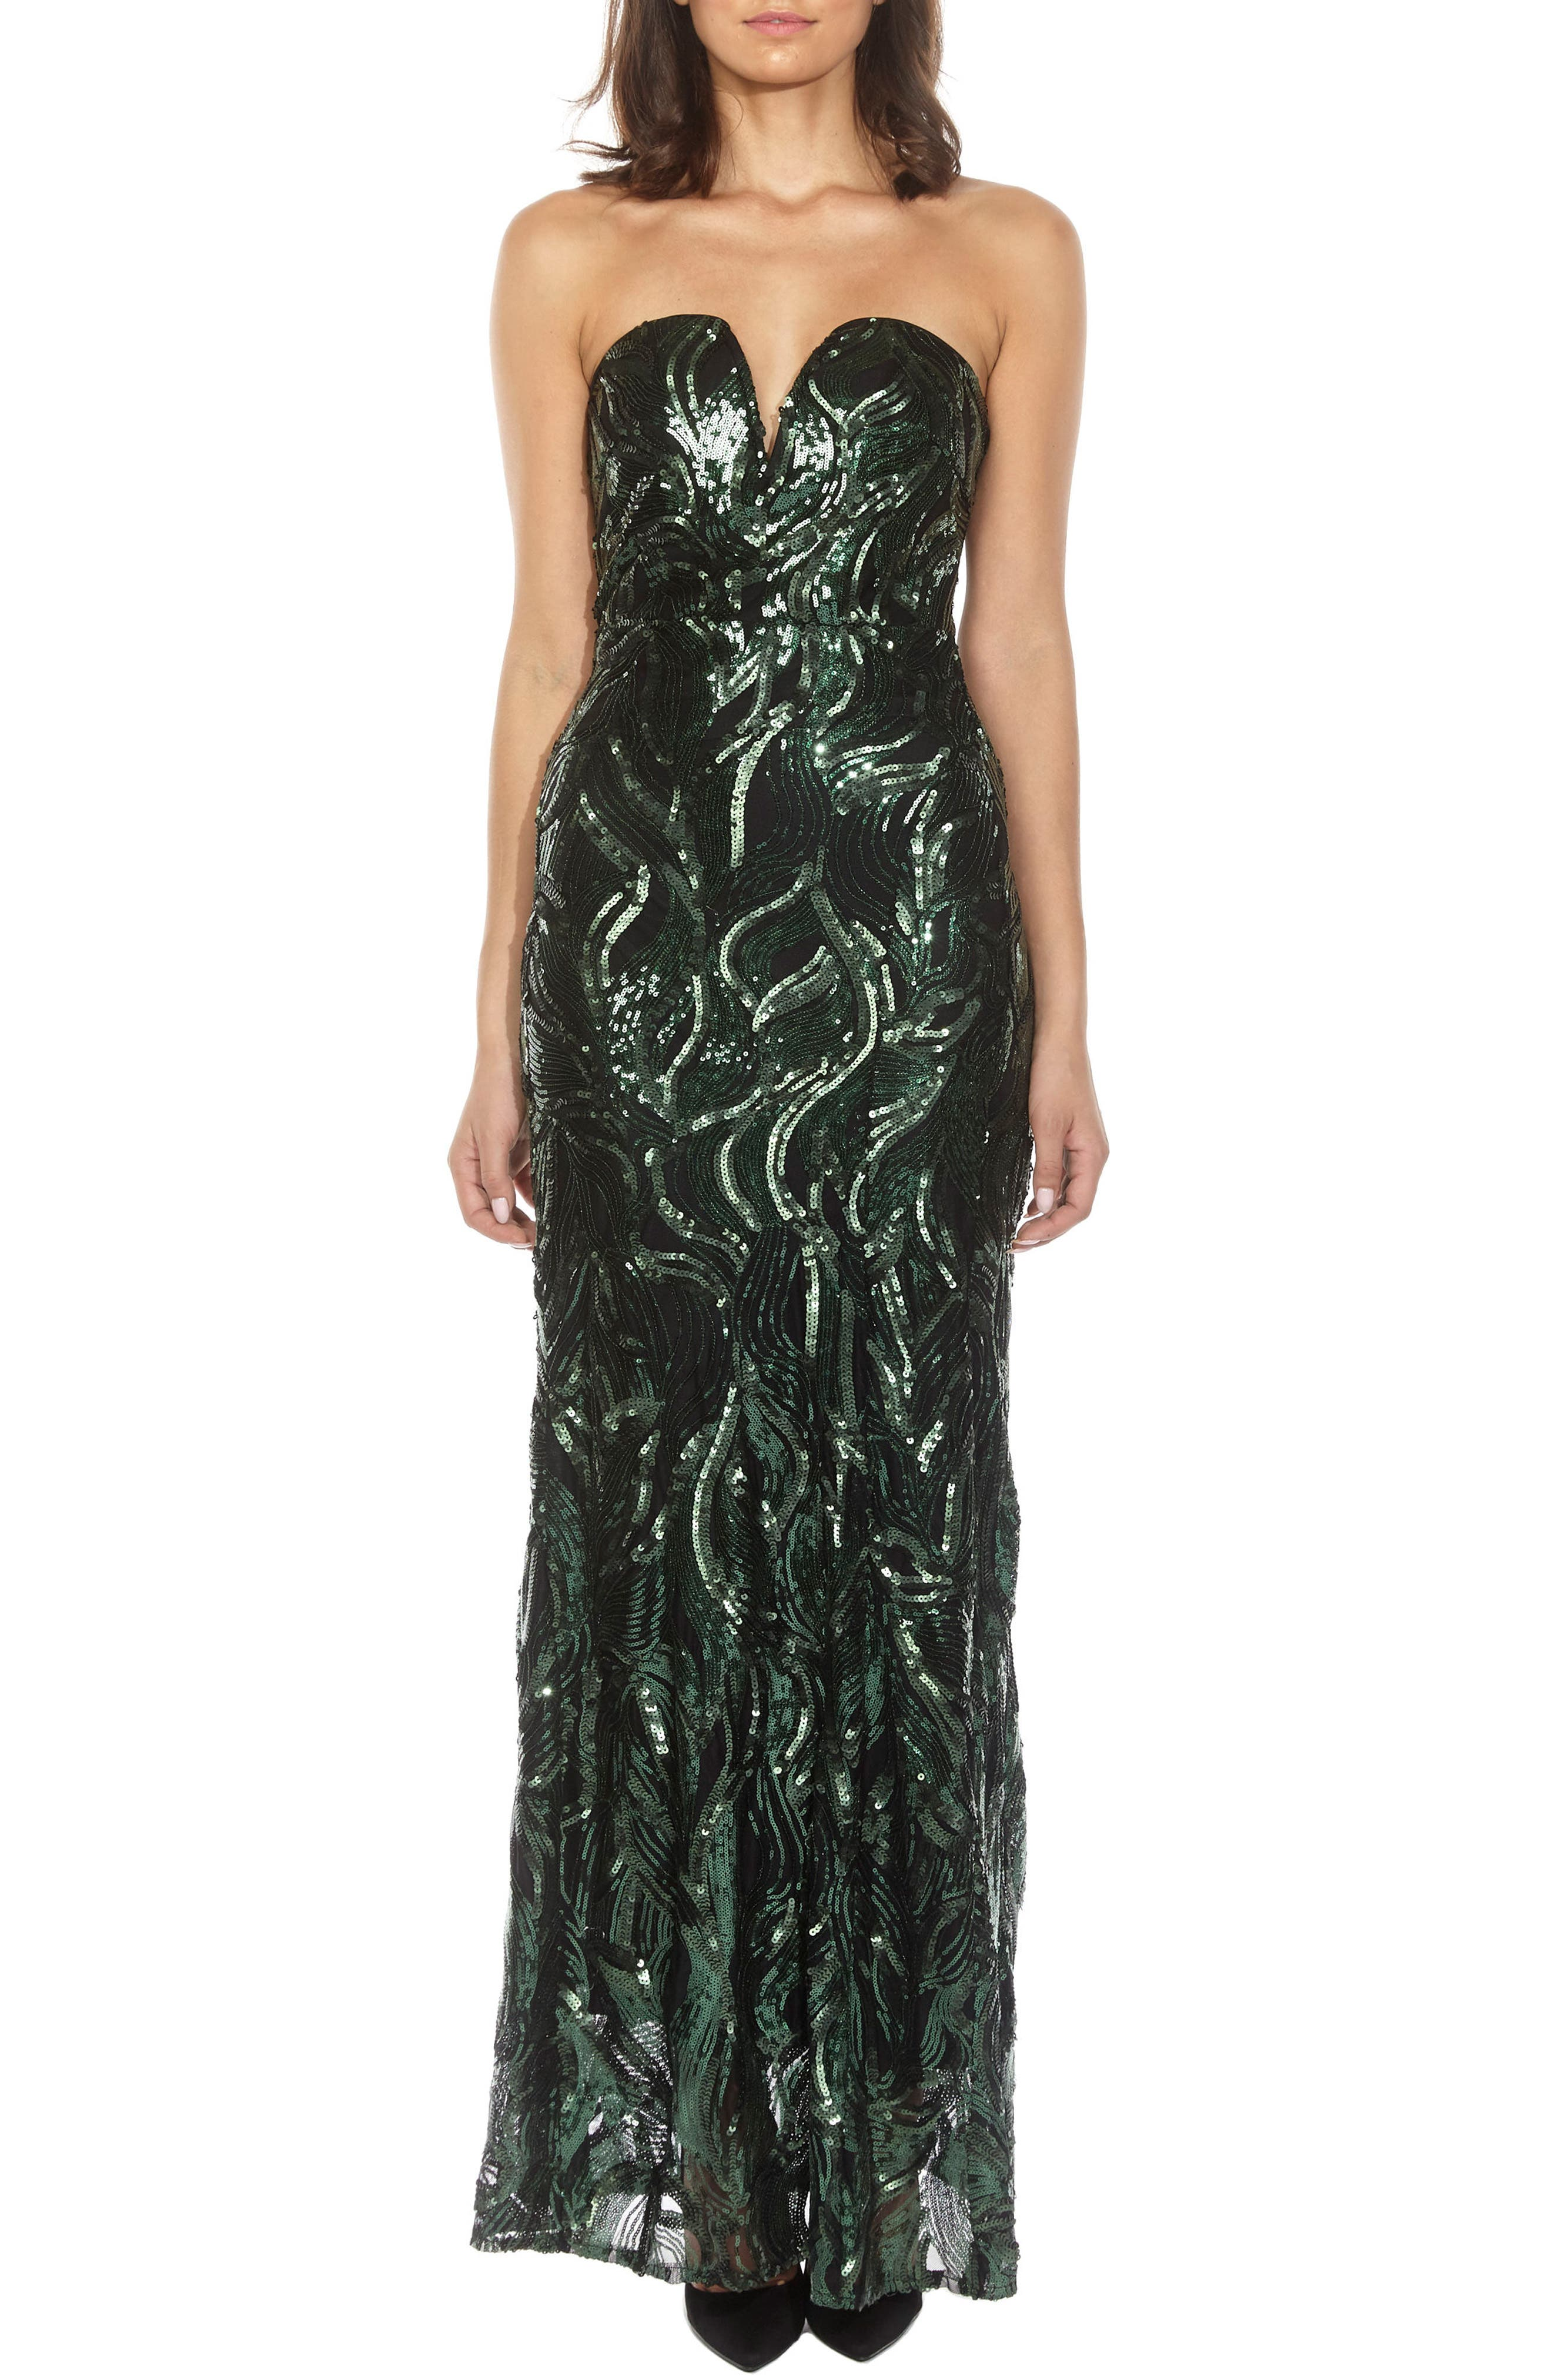 Gaynor Sequin Strapless Maxi Dress,                         Main,                         color, Green